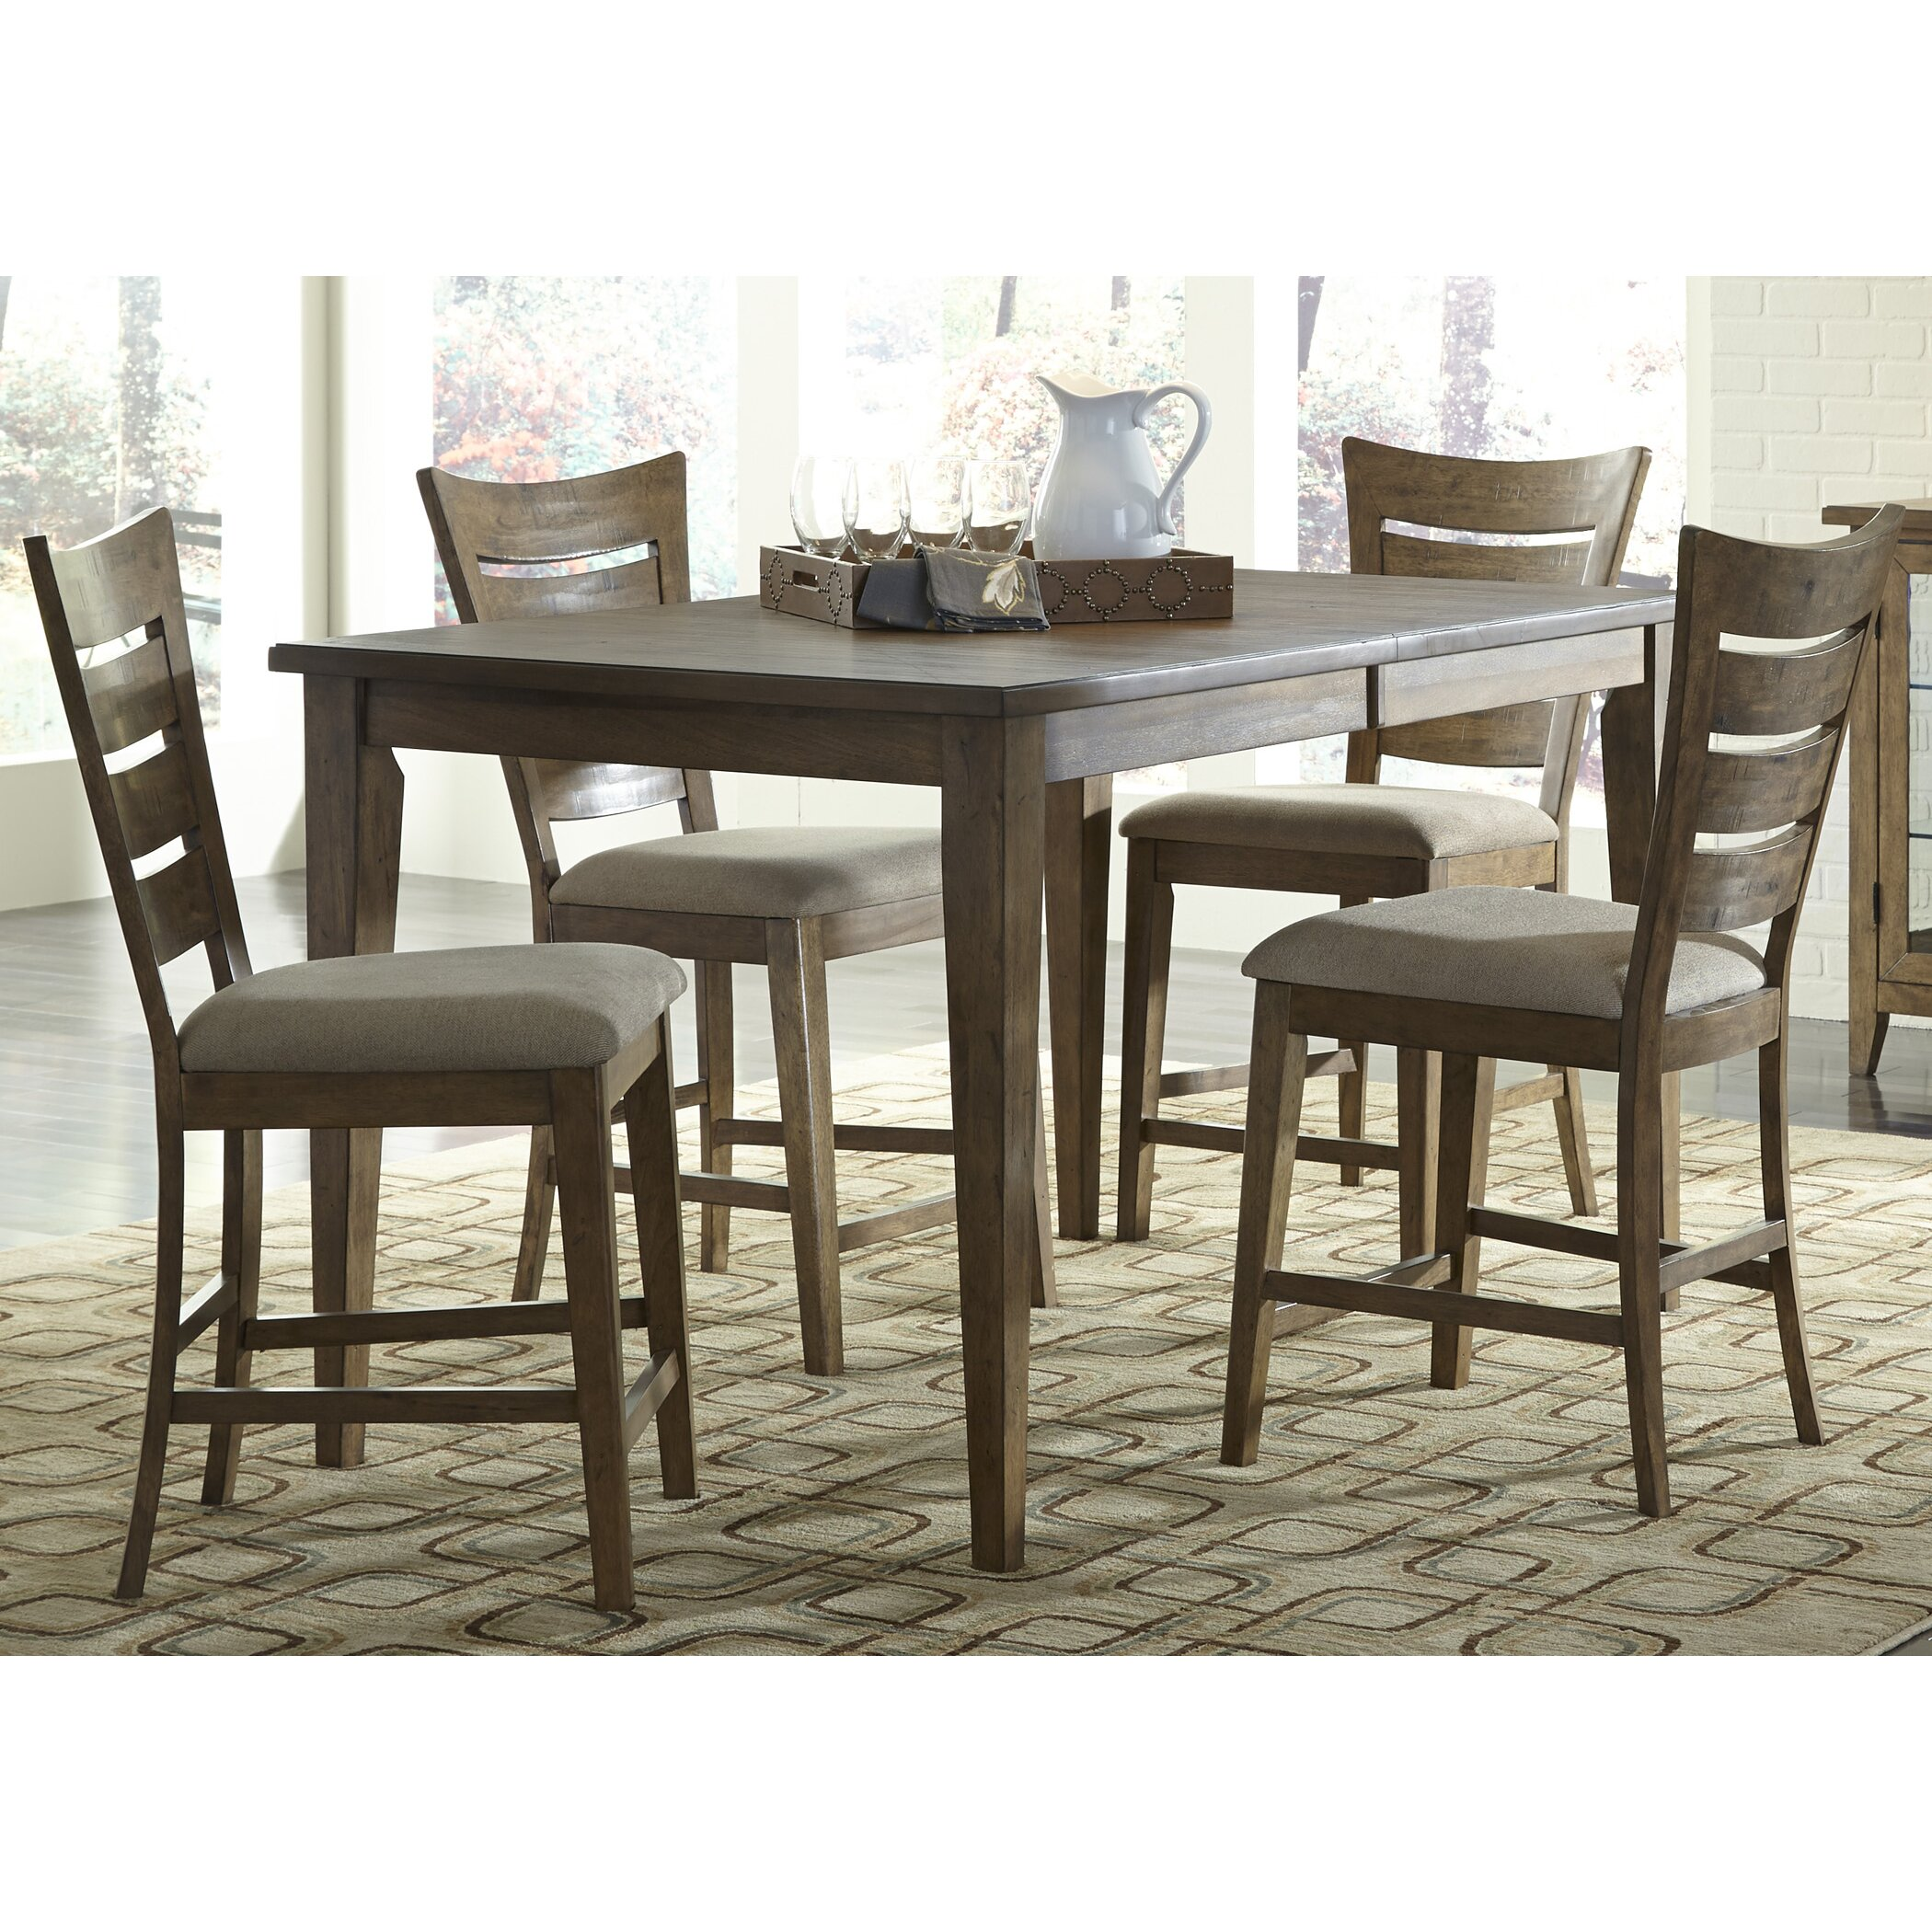 Napa Gathering Collection Dining Table